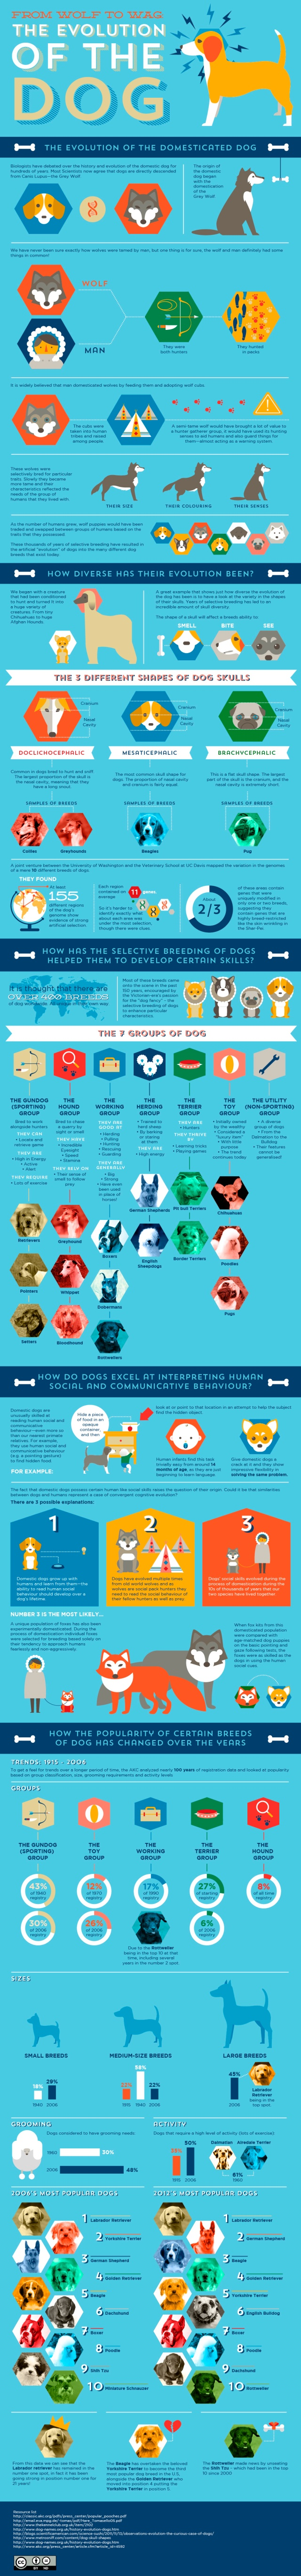 evolution of dogs primal canine dog training